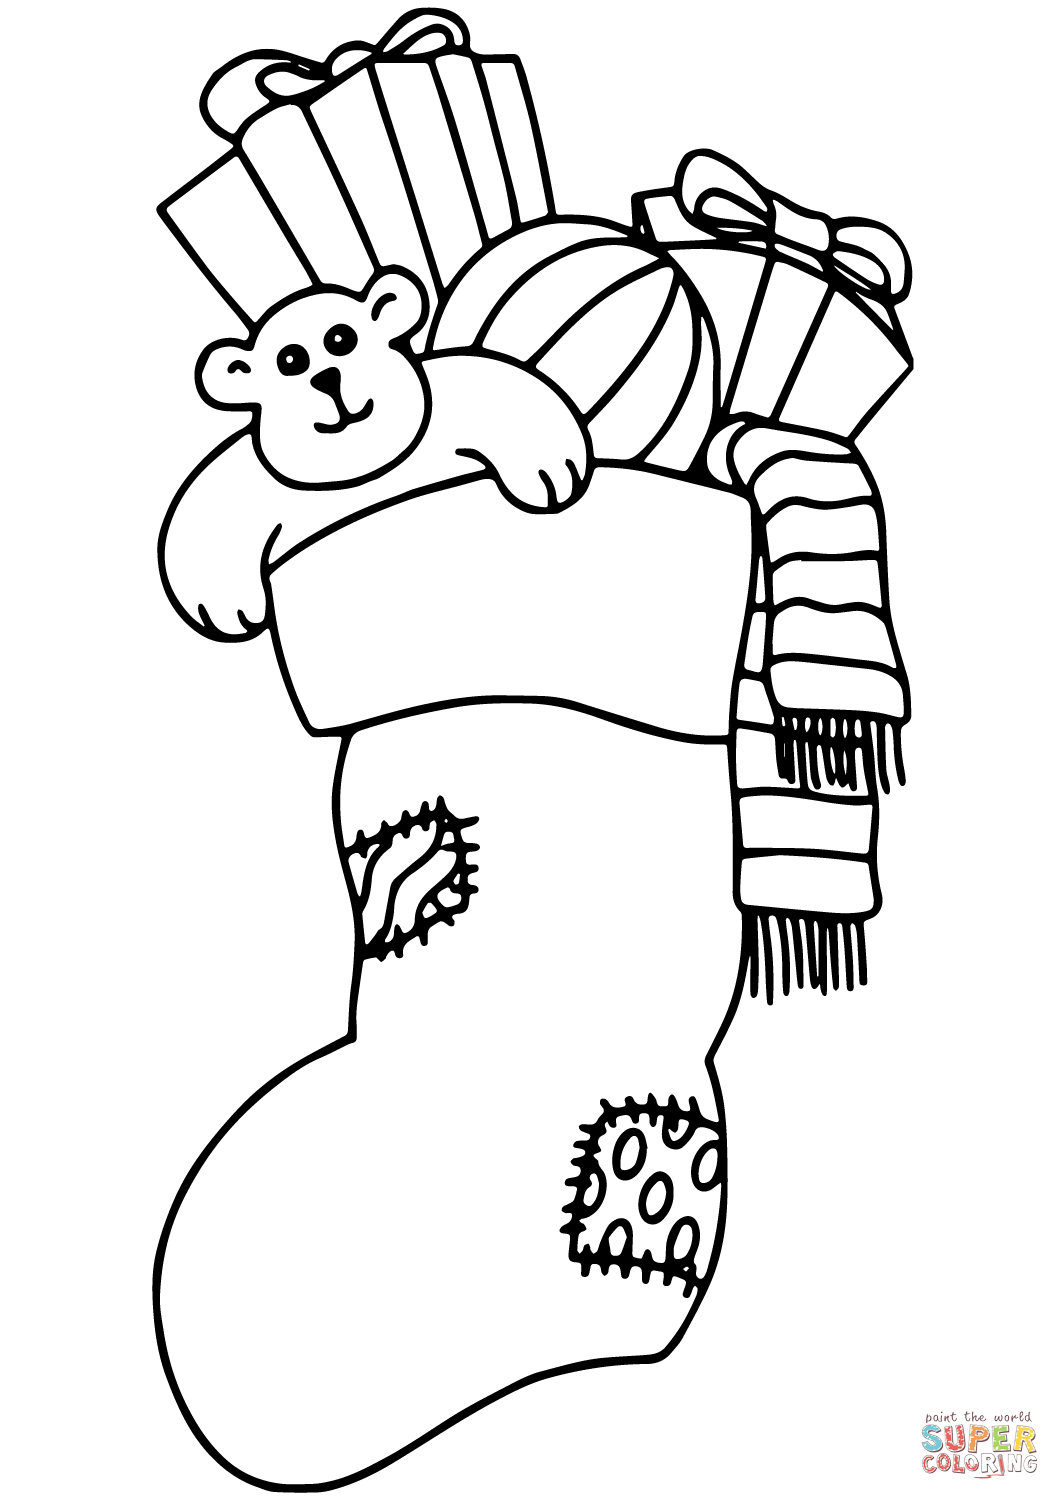 Christmas Stocking Filled With Gifts Coloring Page Free